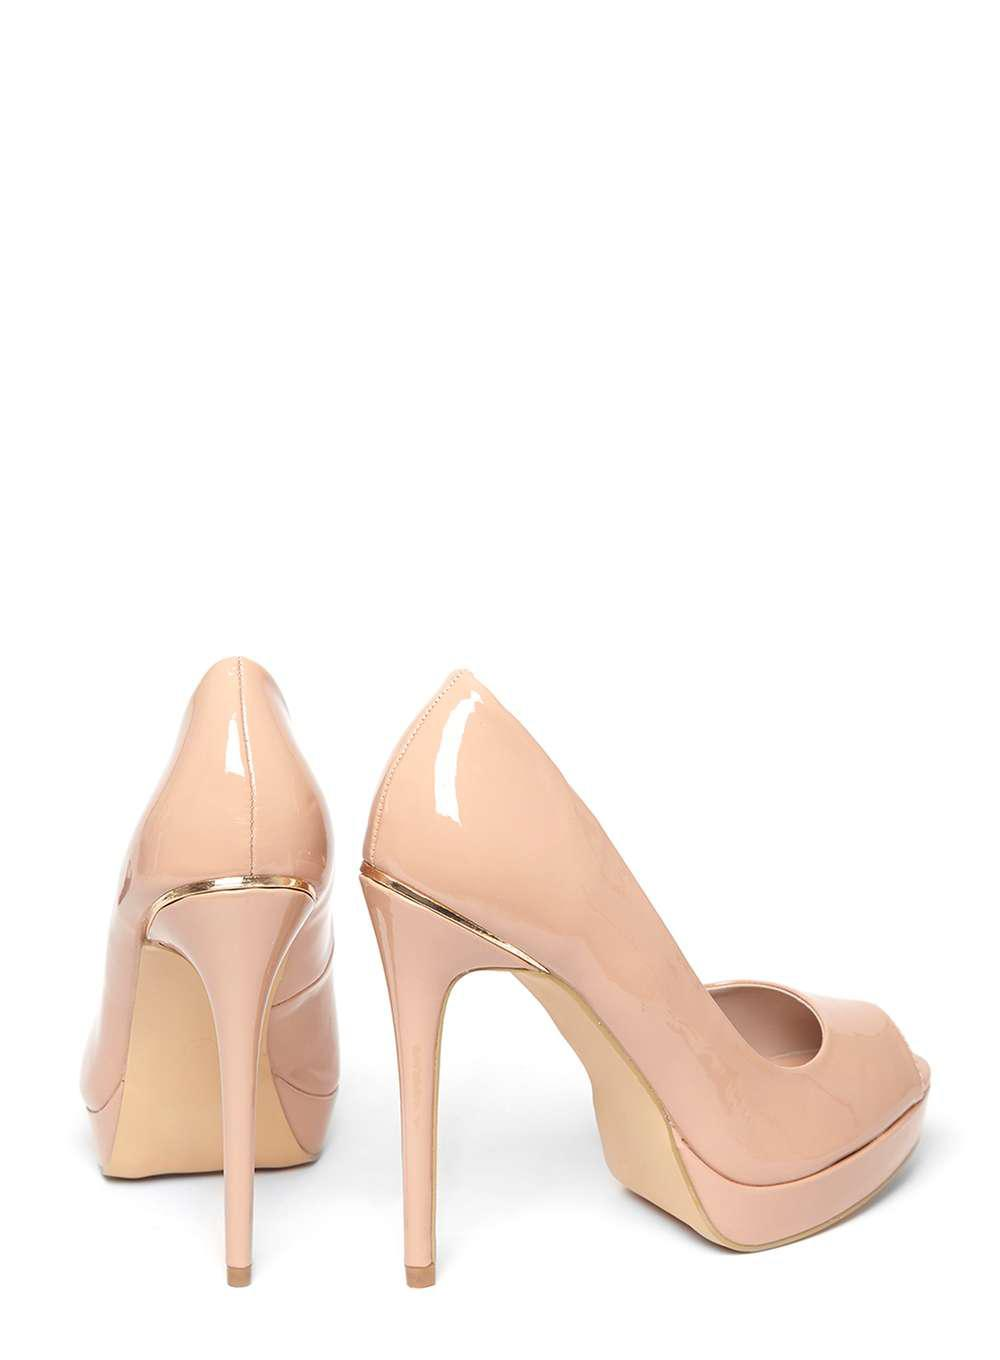 59da766f17773 Dorothy Perkins Nude  gift  Peep Toe Court Shoes in Natural - Lyst